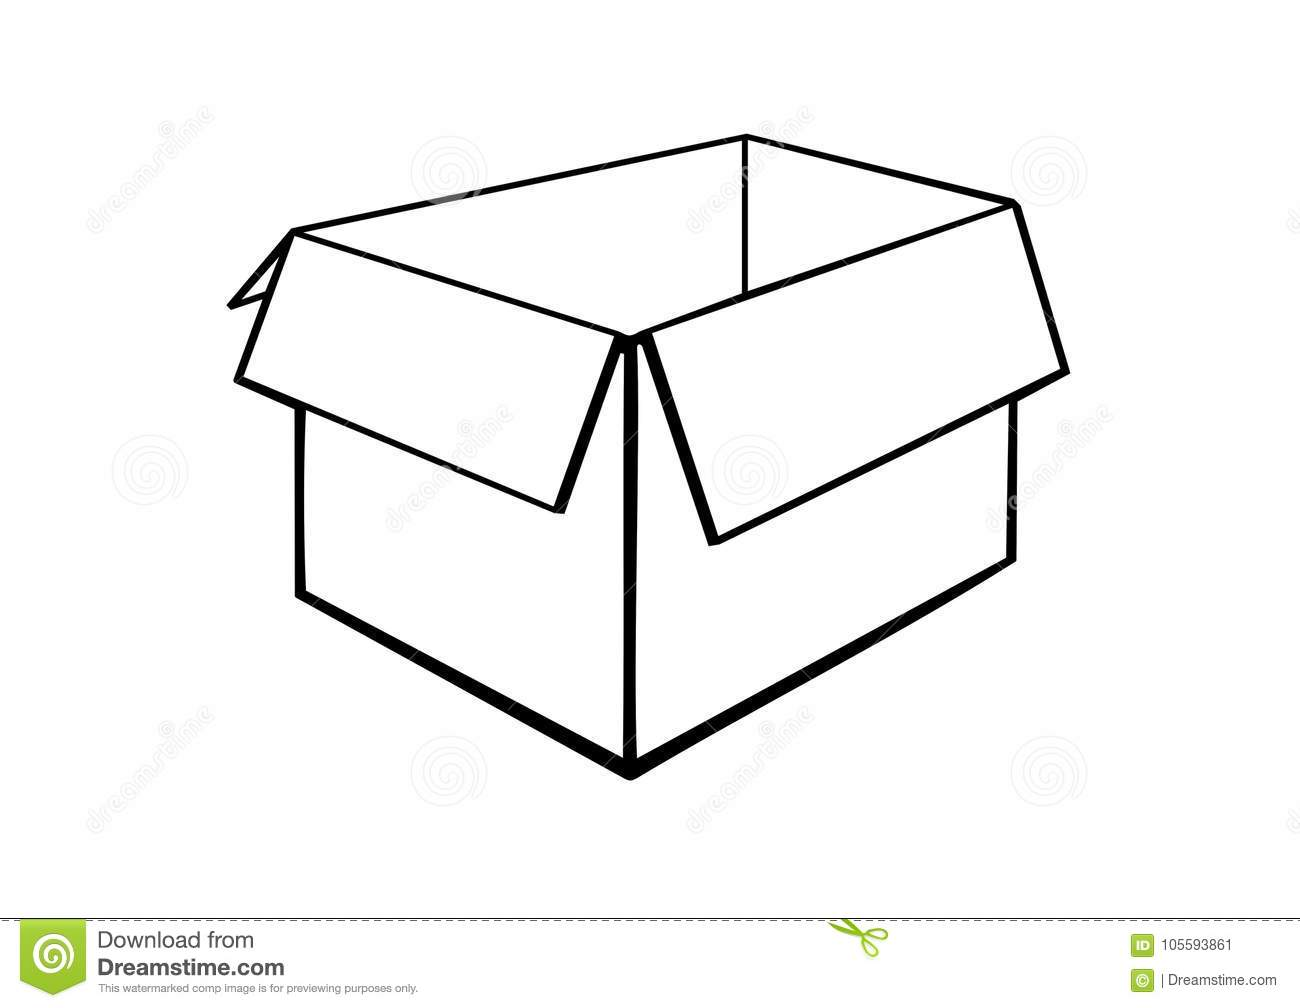 An opened cardboard box. stock vector. Illustration of cardboard.